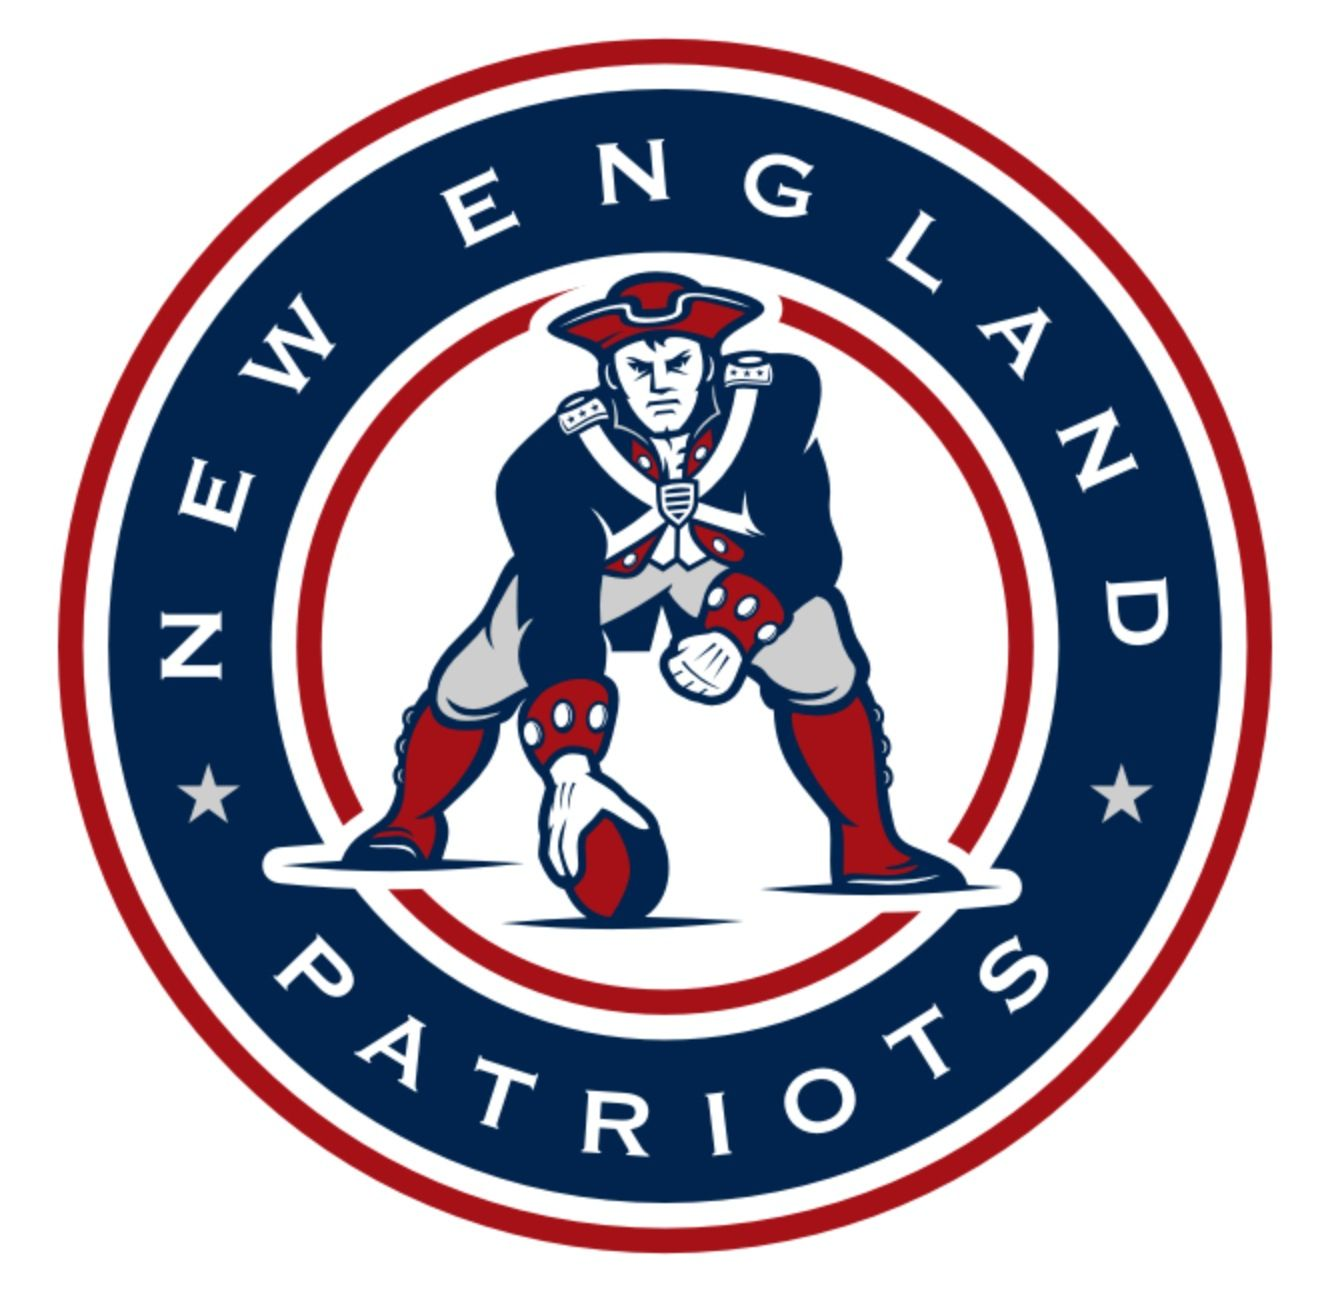 New England Patriots Vintage New England Patriots Logo New England Patriots Cheerleaders New England Patriots